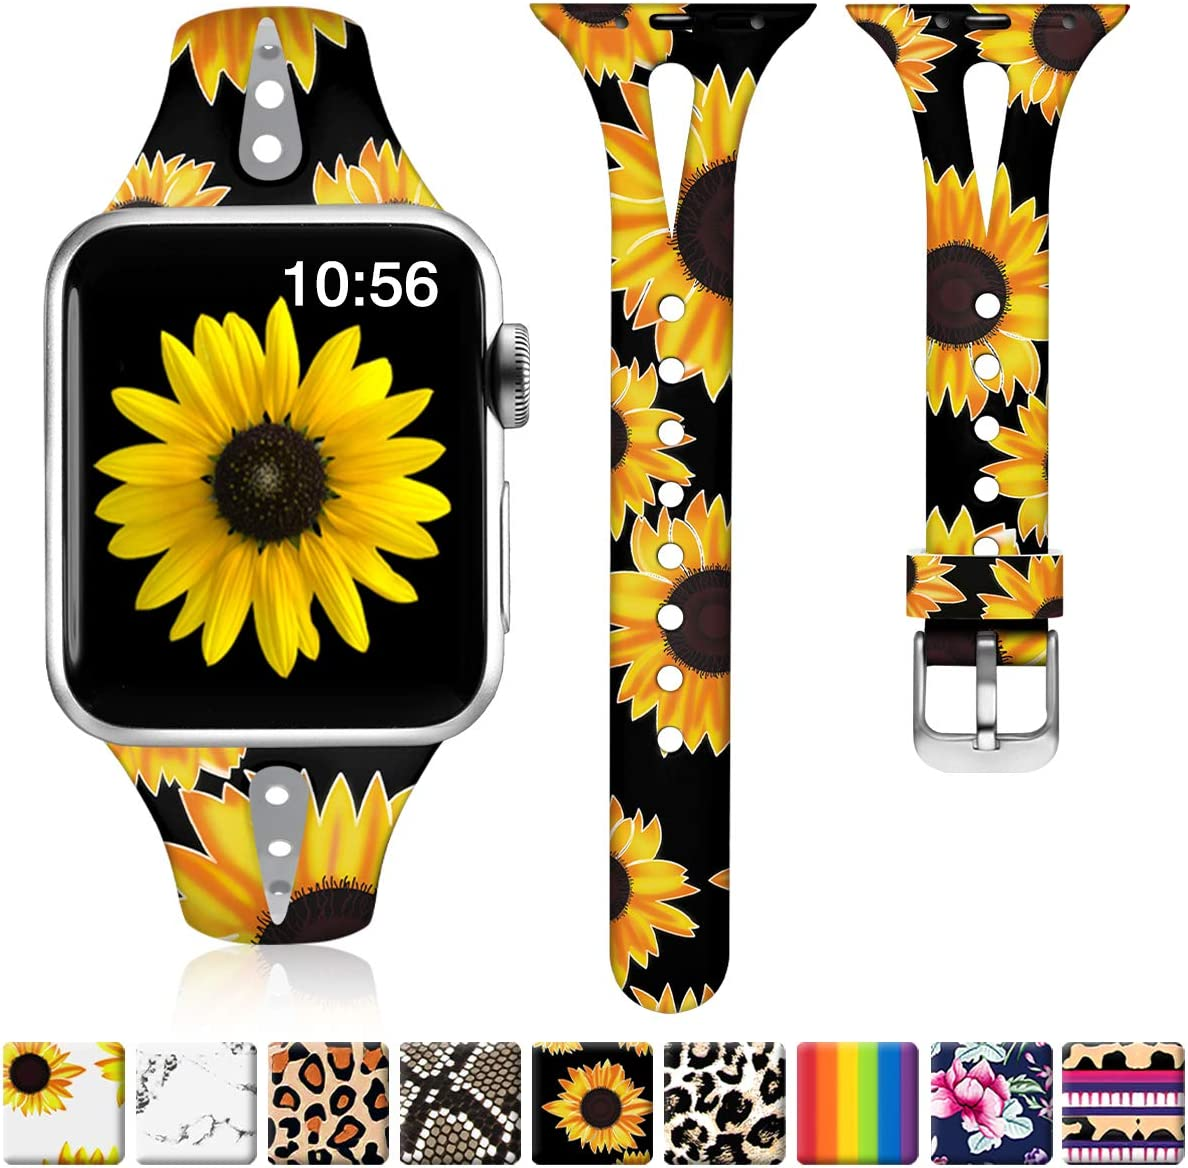 ZAROTO Sunflower Bands Compatible for Apple Watch Series 6 Series 5/4 40mm Women, 38mm iwatch bands for Apple Watch SE, Series 3 2 1, Cute Slim Soft Silicone Narrow Print Wristband S/M Black Sunflower